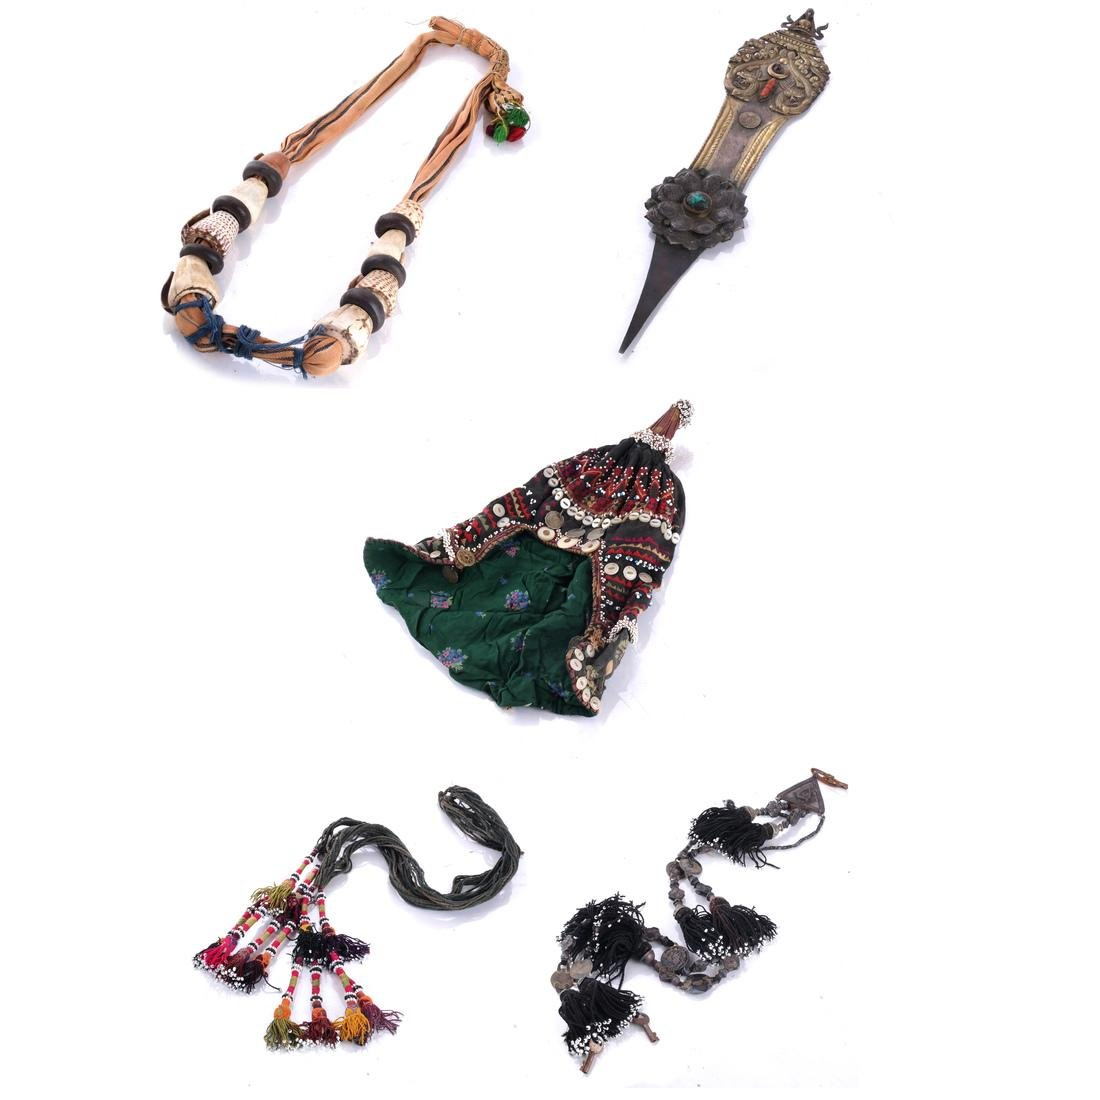 Asian, Tibetan Jewelry and Accessories